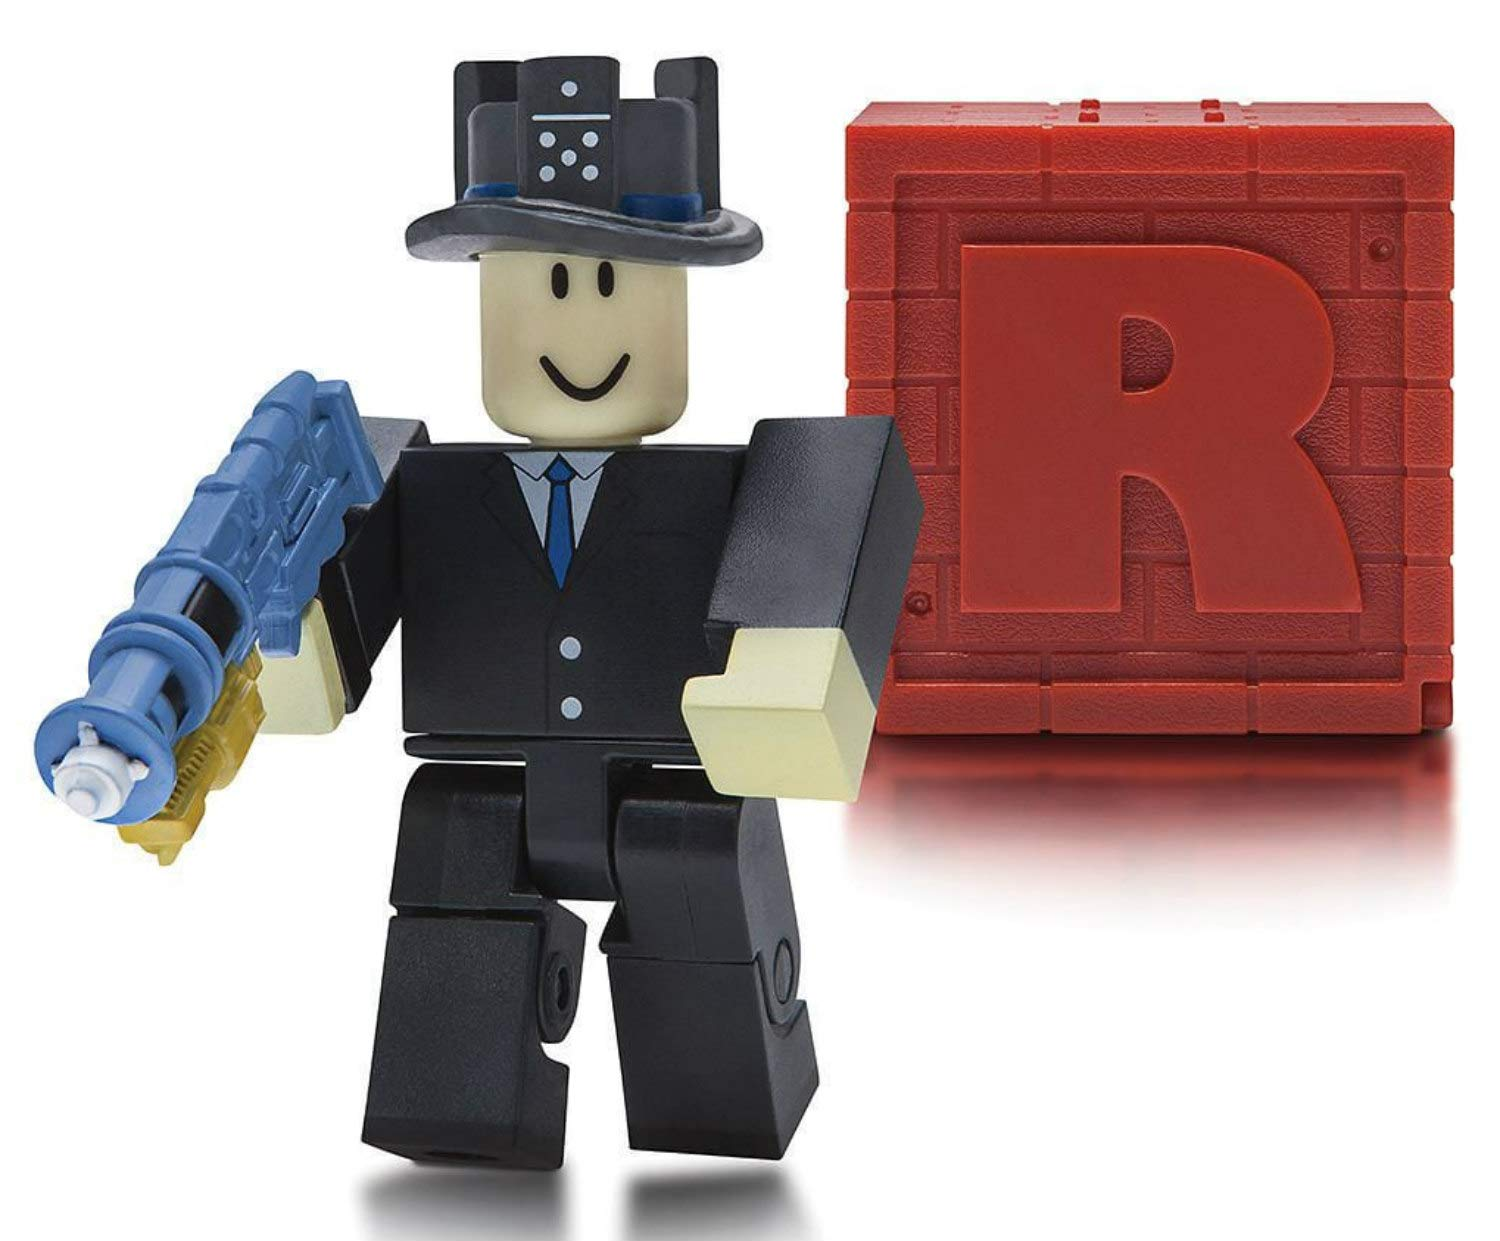 Roblox Series 4 - Amazoncom Roblox Series 4 Axisangle Action Figure Mystery